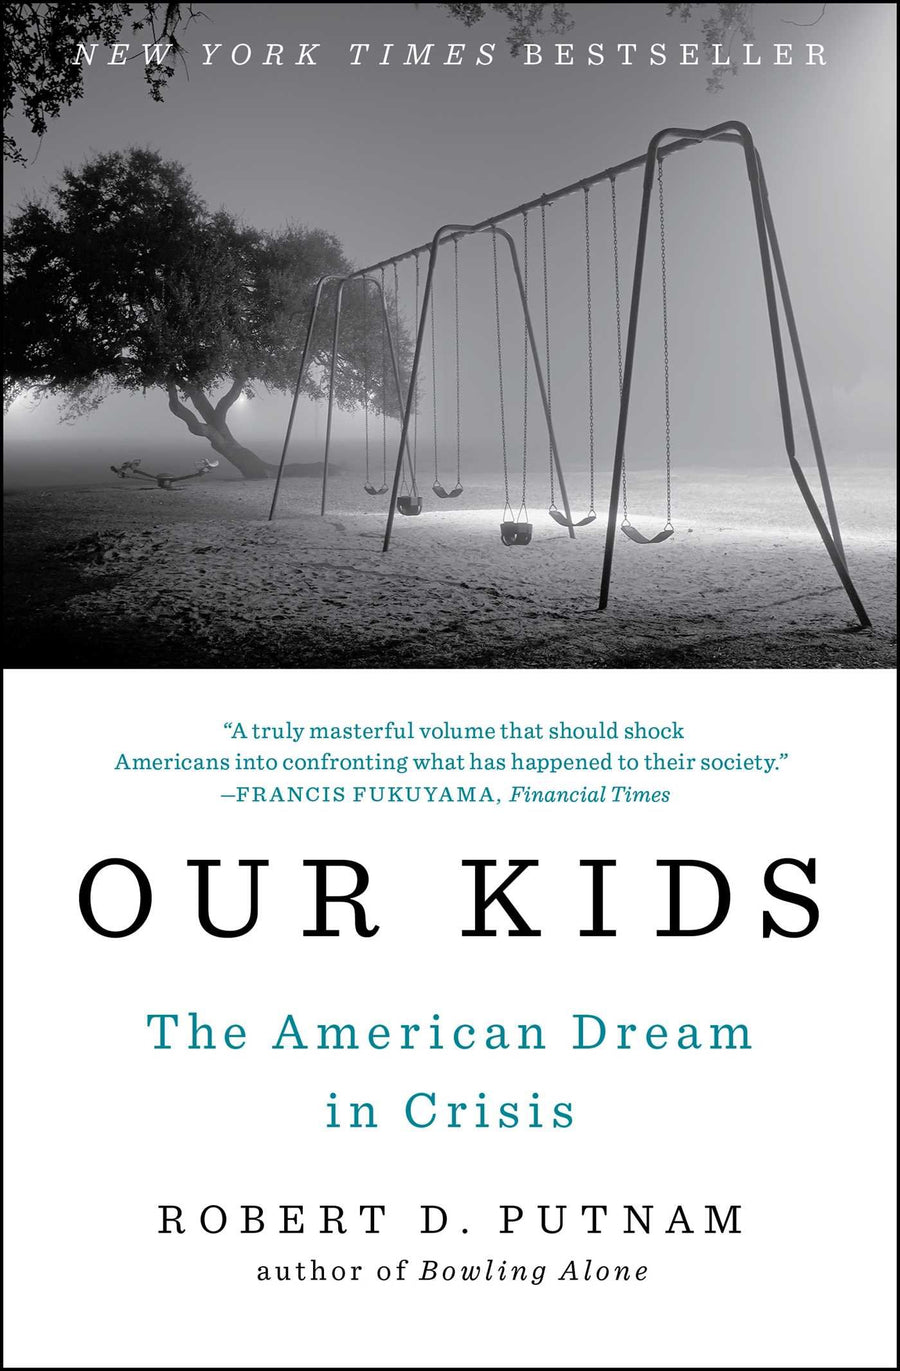 Our Kids: Narrowing the Opportunity Gap 4-Part Series Complete Set with Our Kids: The American Dream in Crisis by Dr. Robert D. Putnam (Home Use Only)